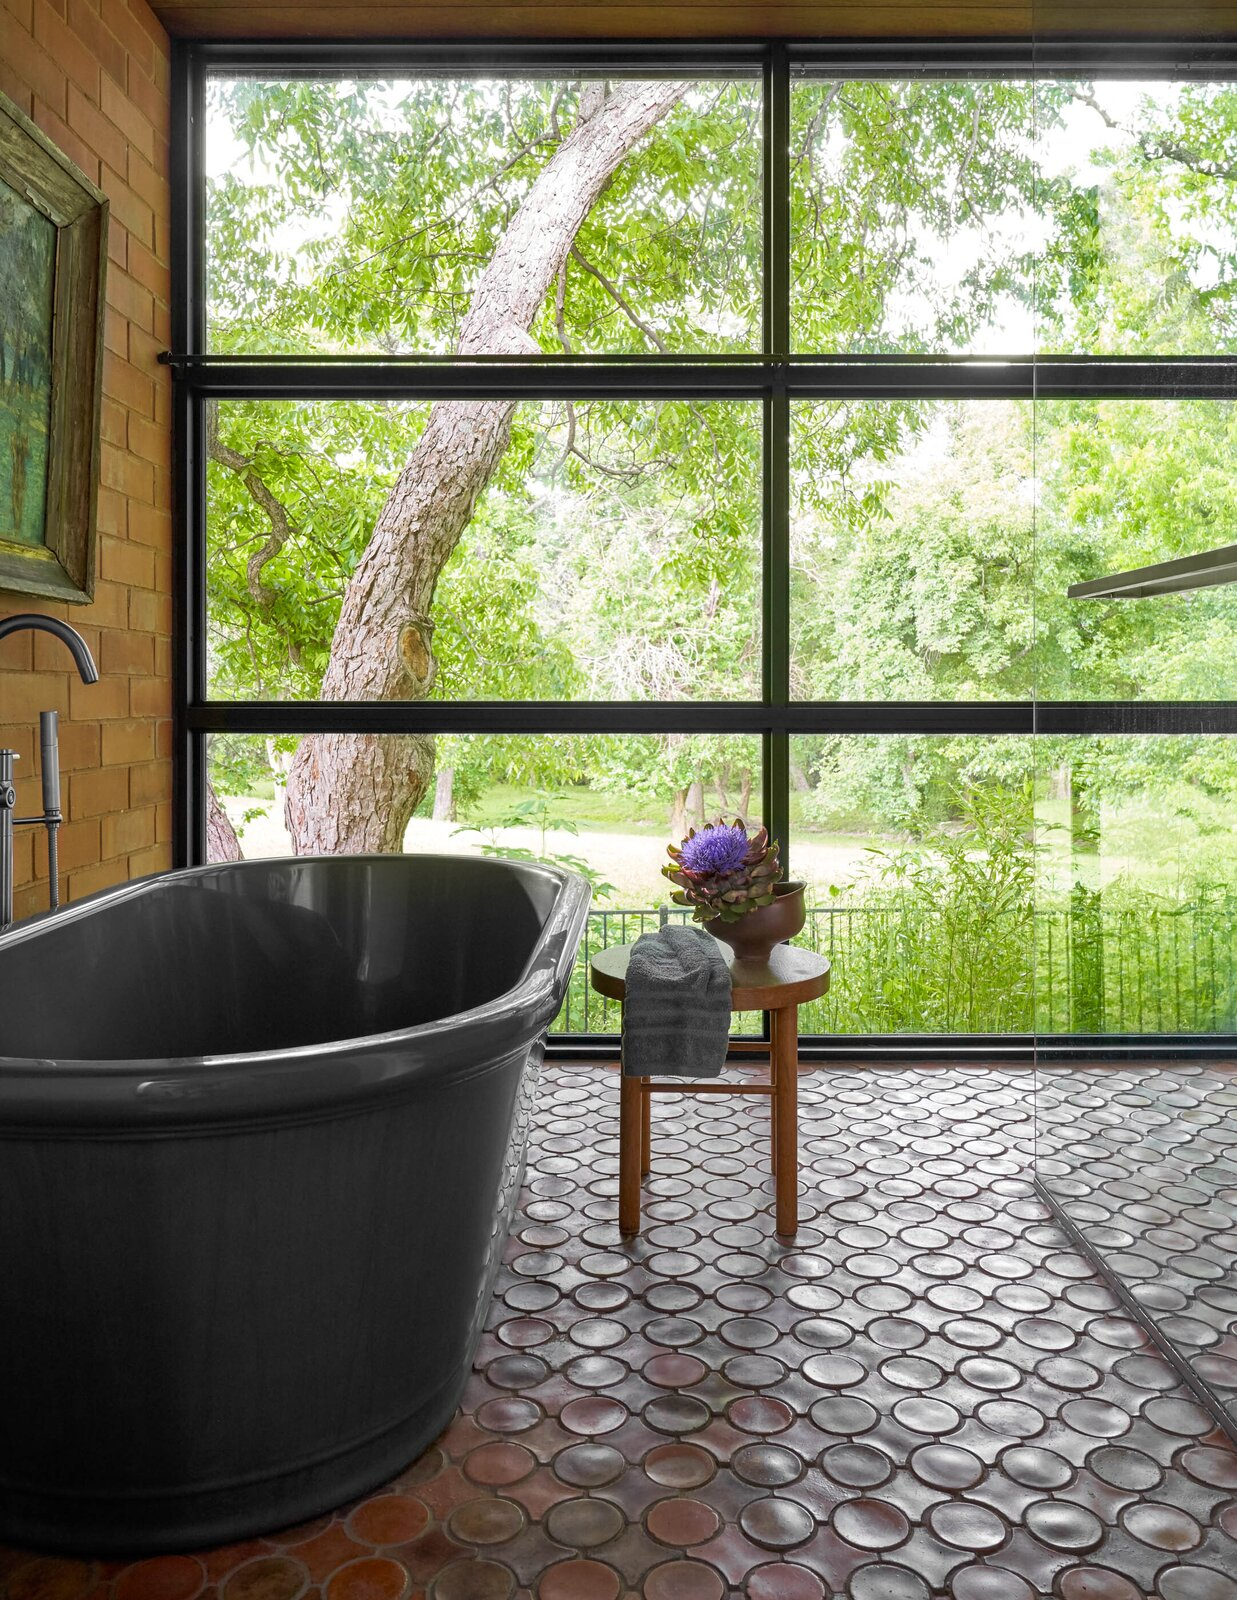 Bathroom in River House 2 by Bentley Tibbs Architect